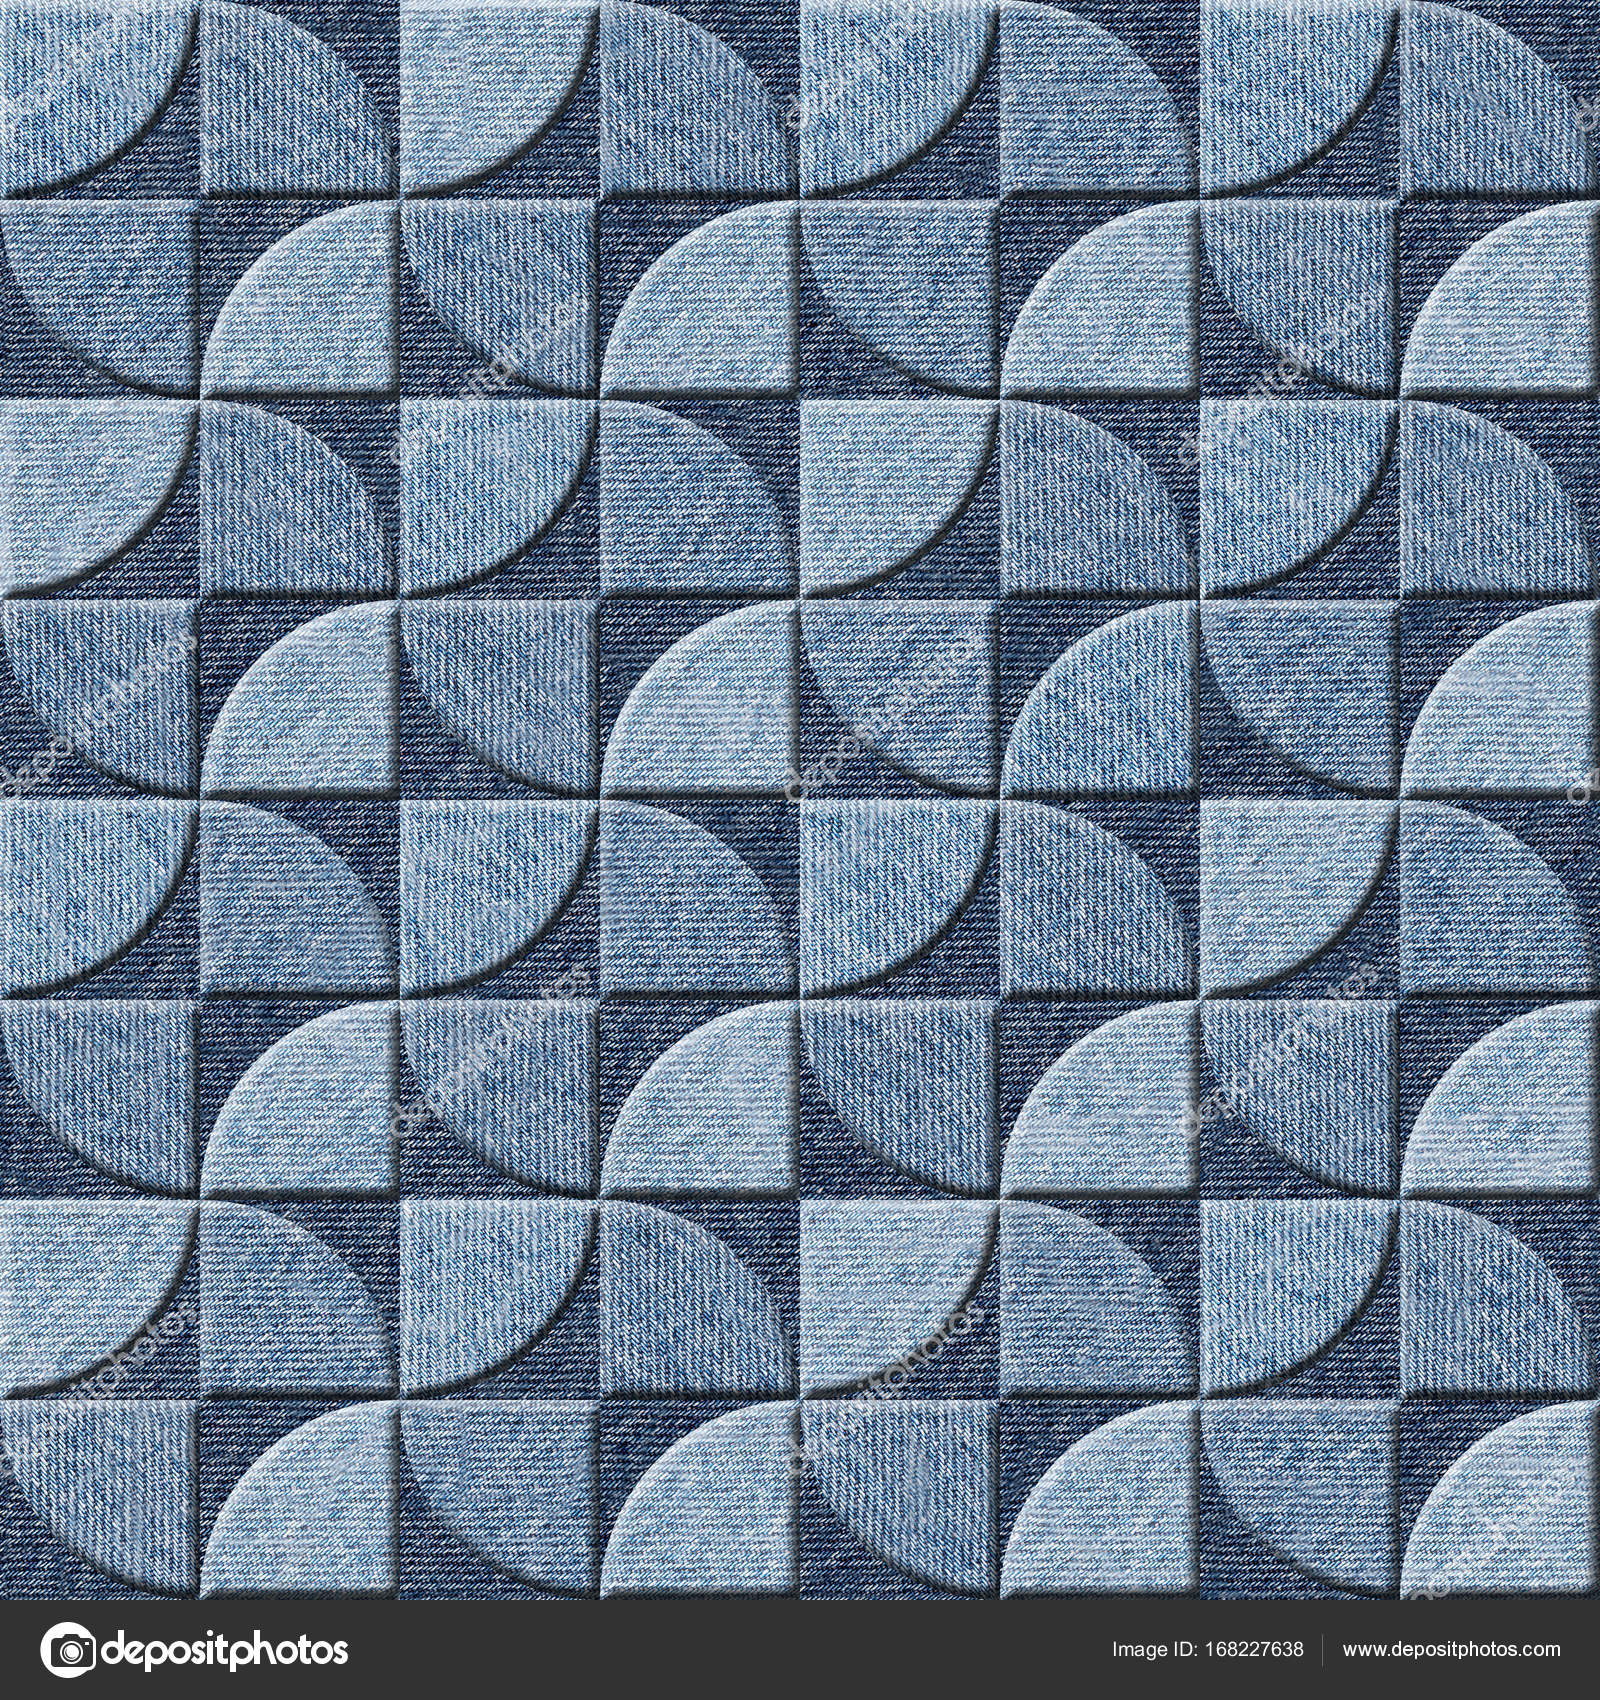 Interior wall panel pattern - seamless background - Blue jeans ...